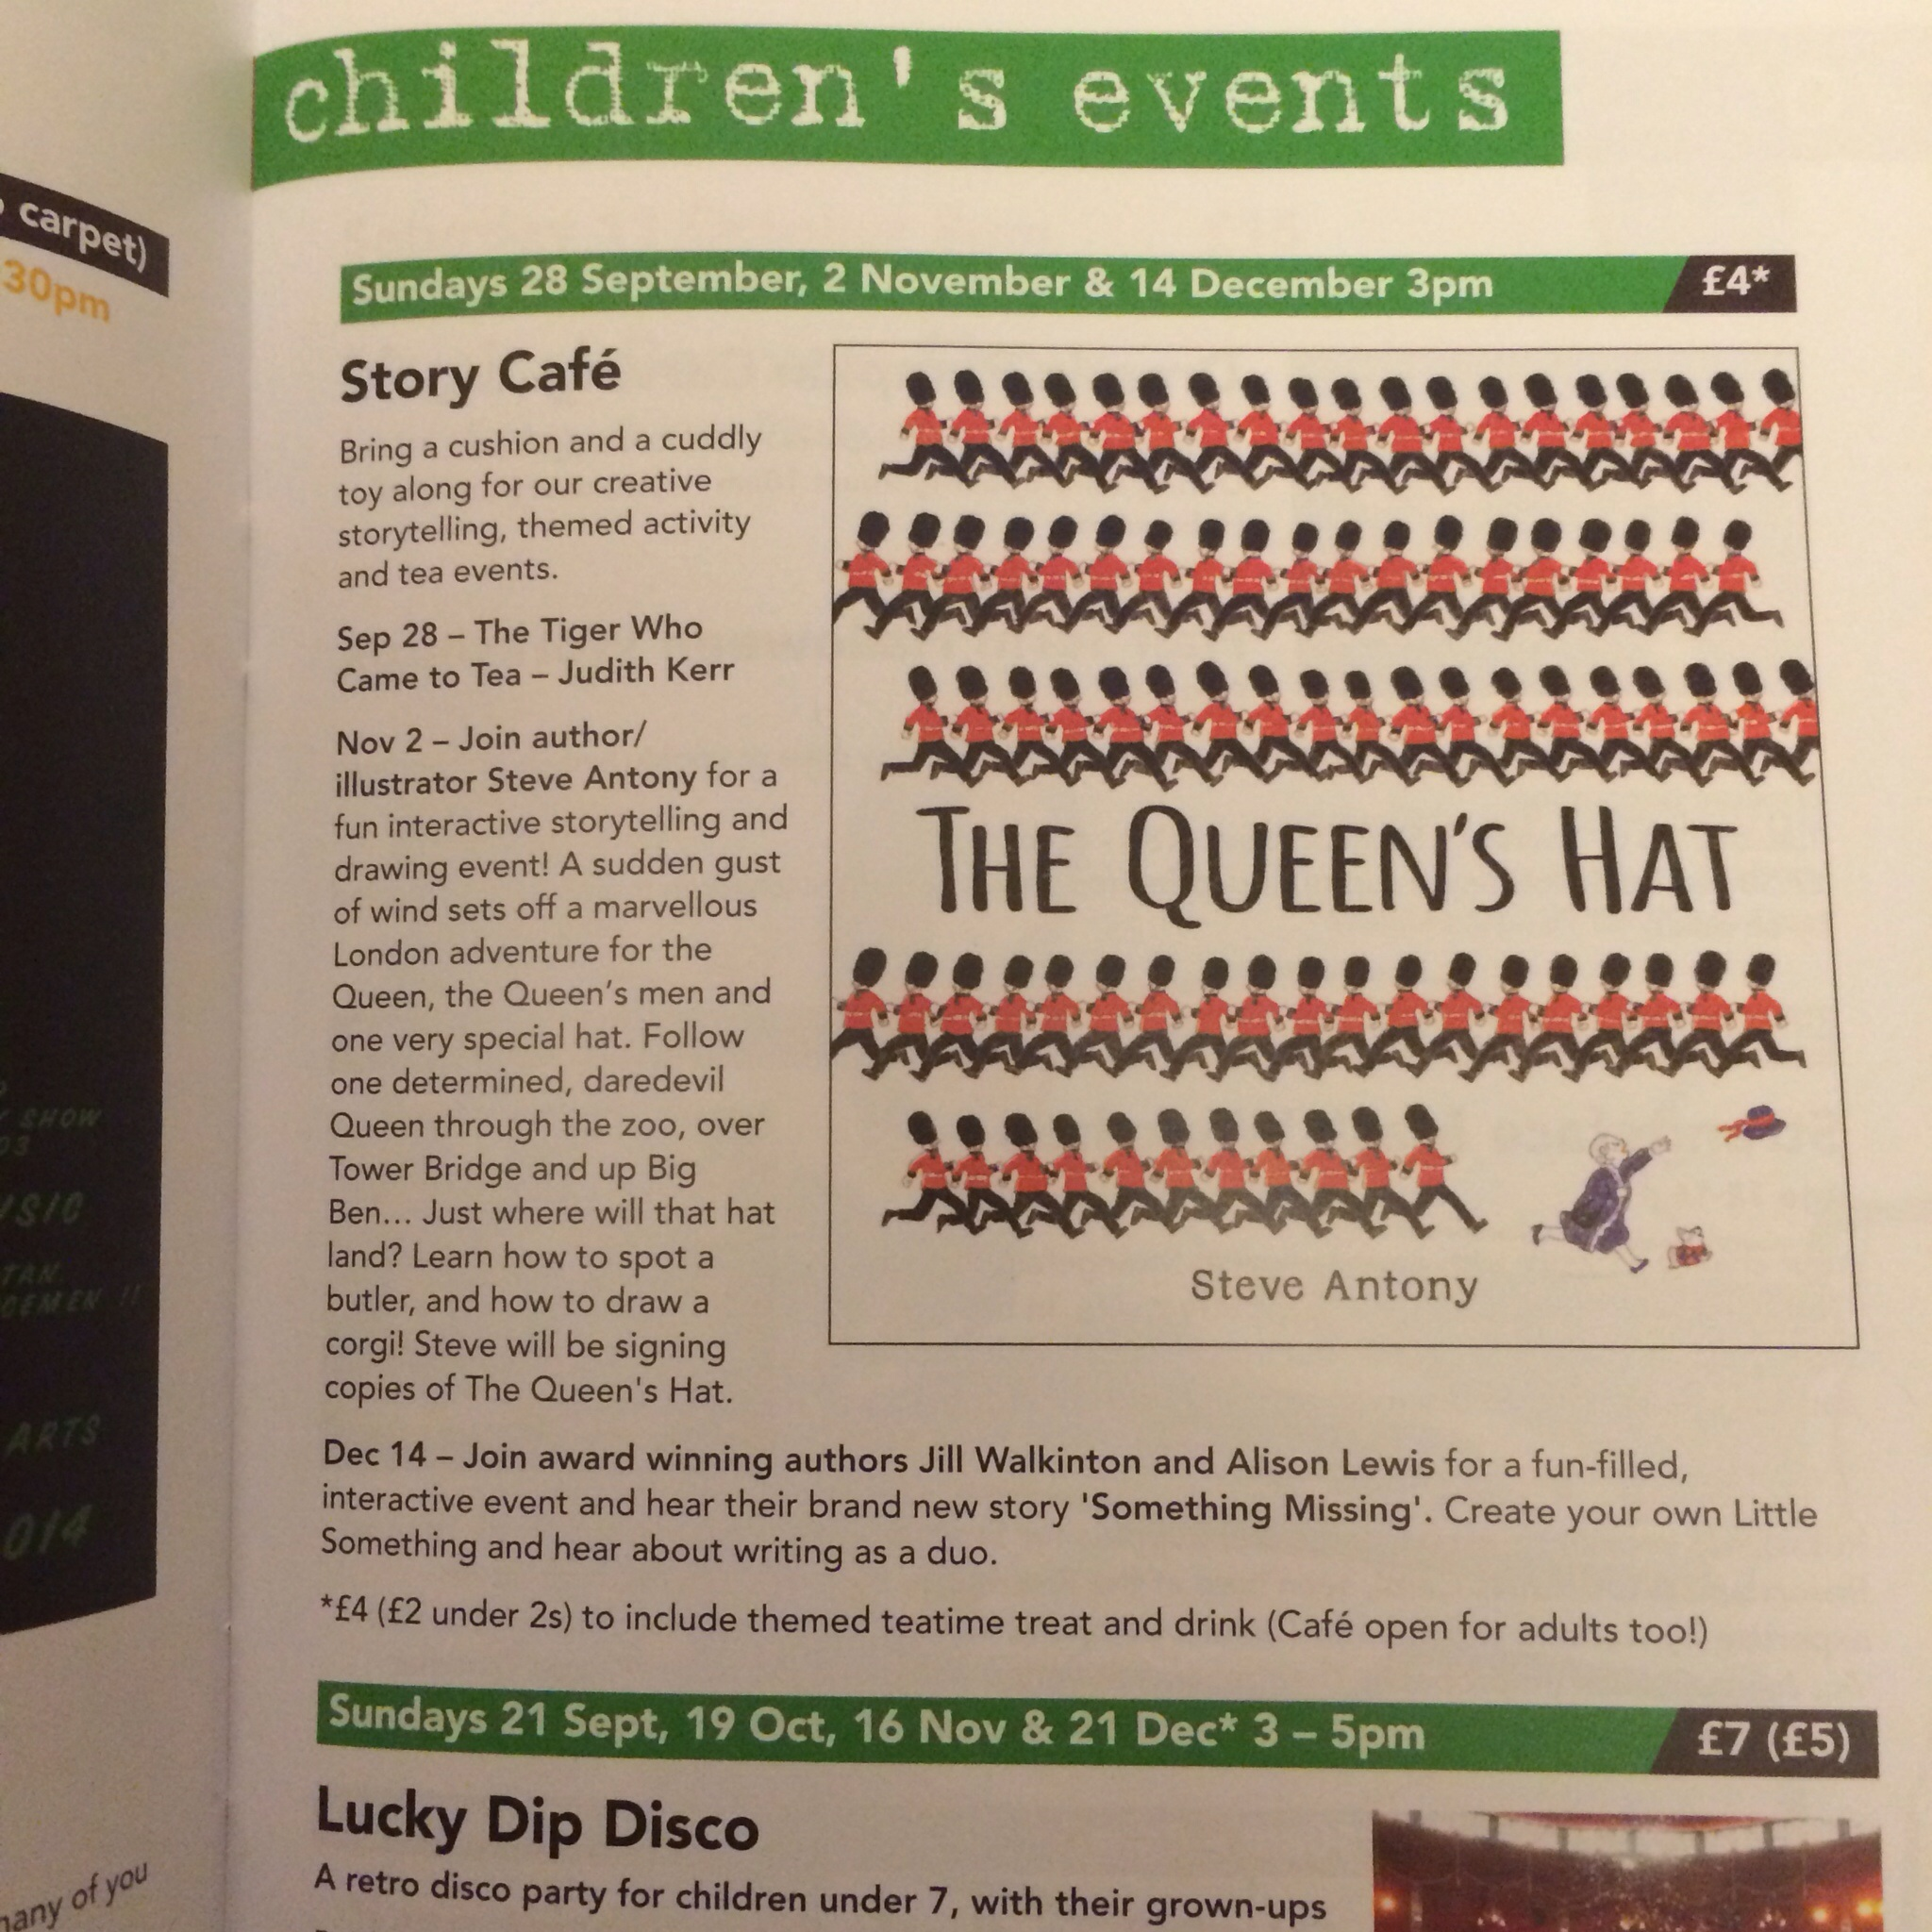 Inside the events magazine.